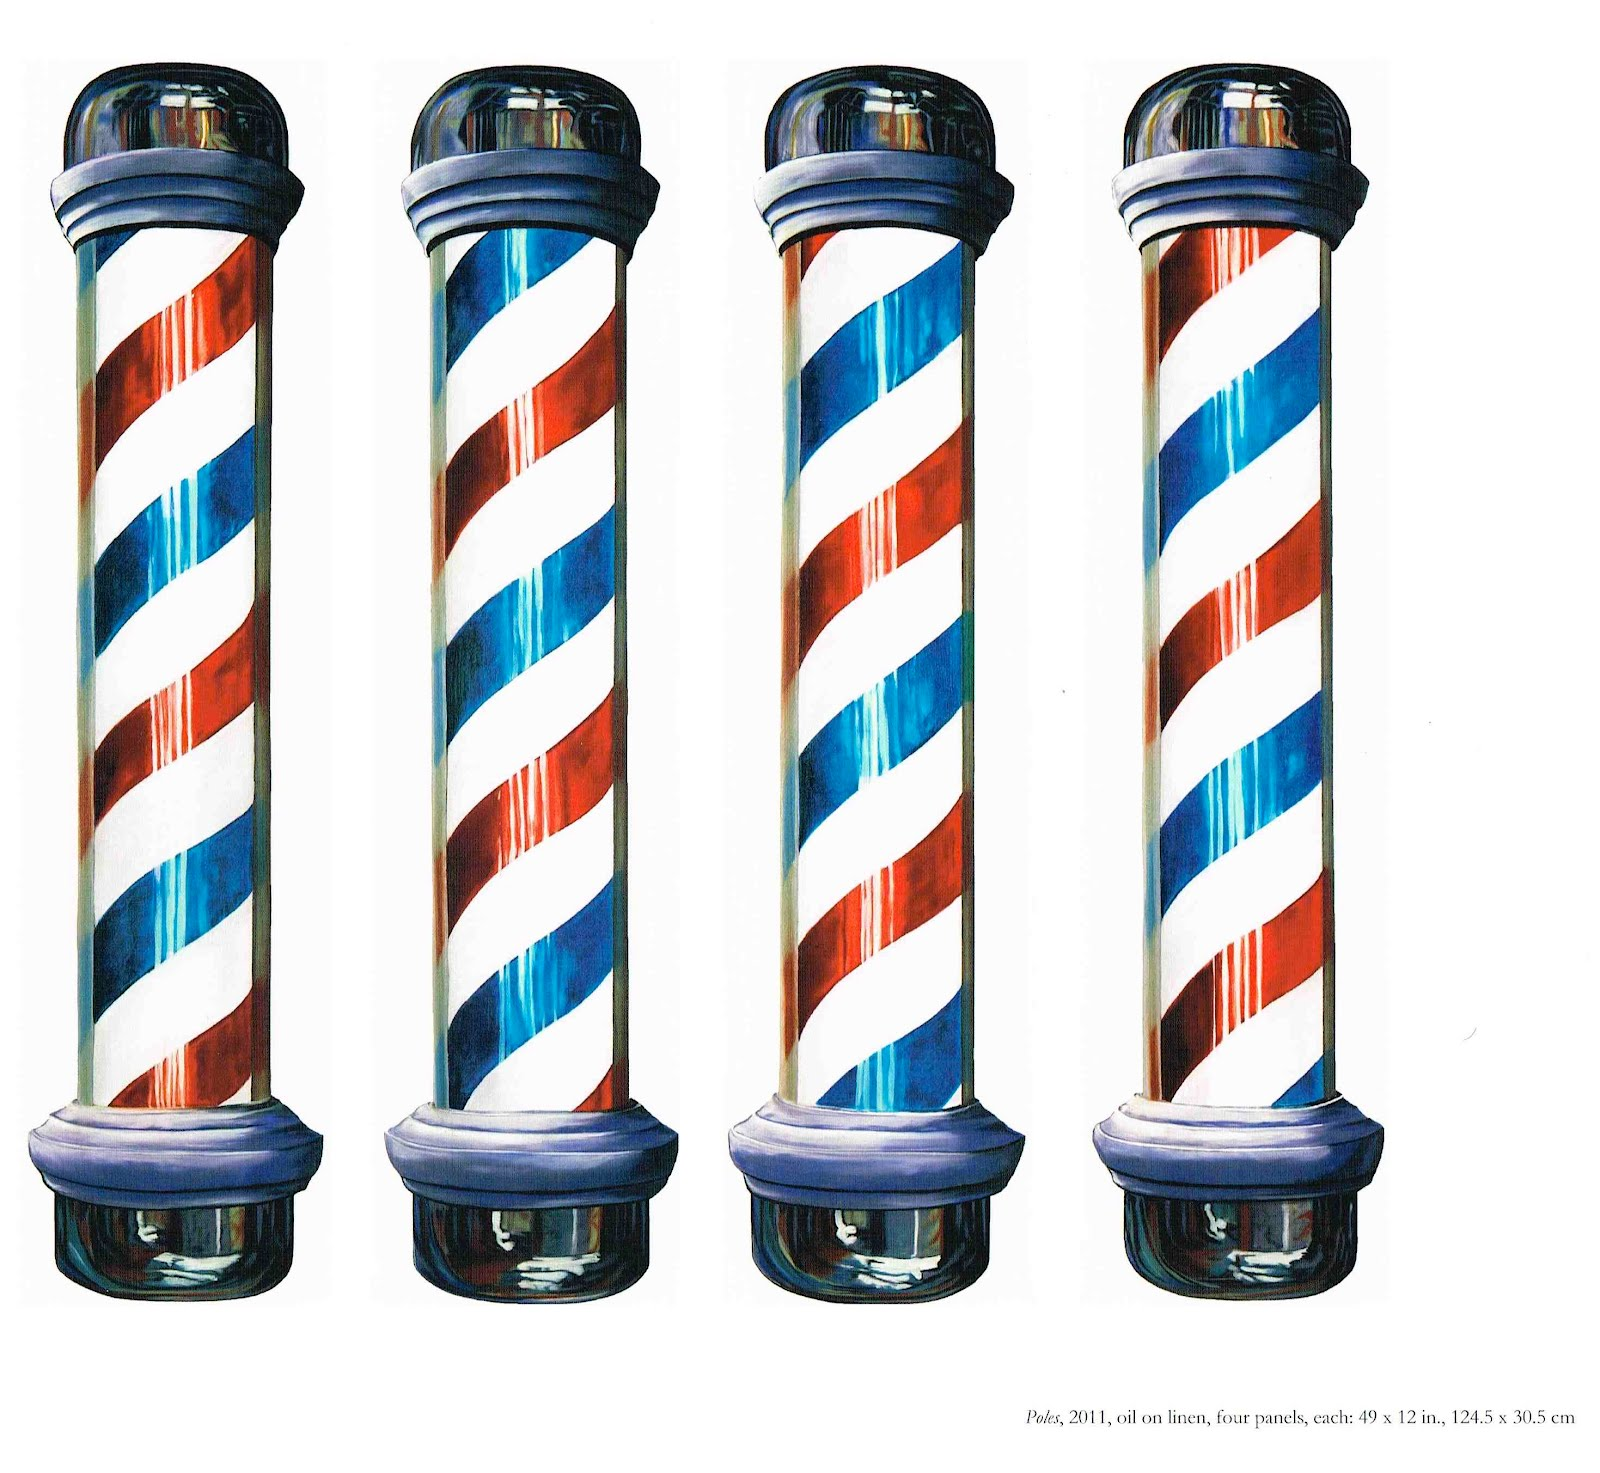 pictures of barber poles clipart best Barber Pole Images Free Free Vintage Barber Poles